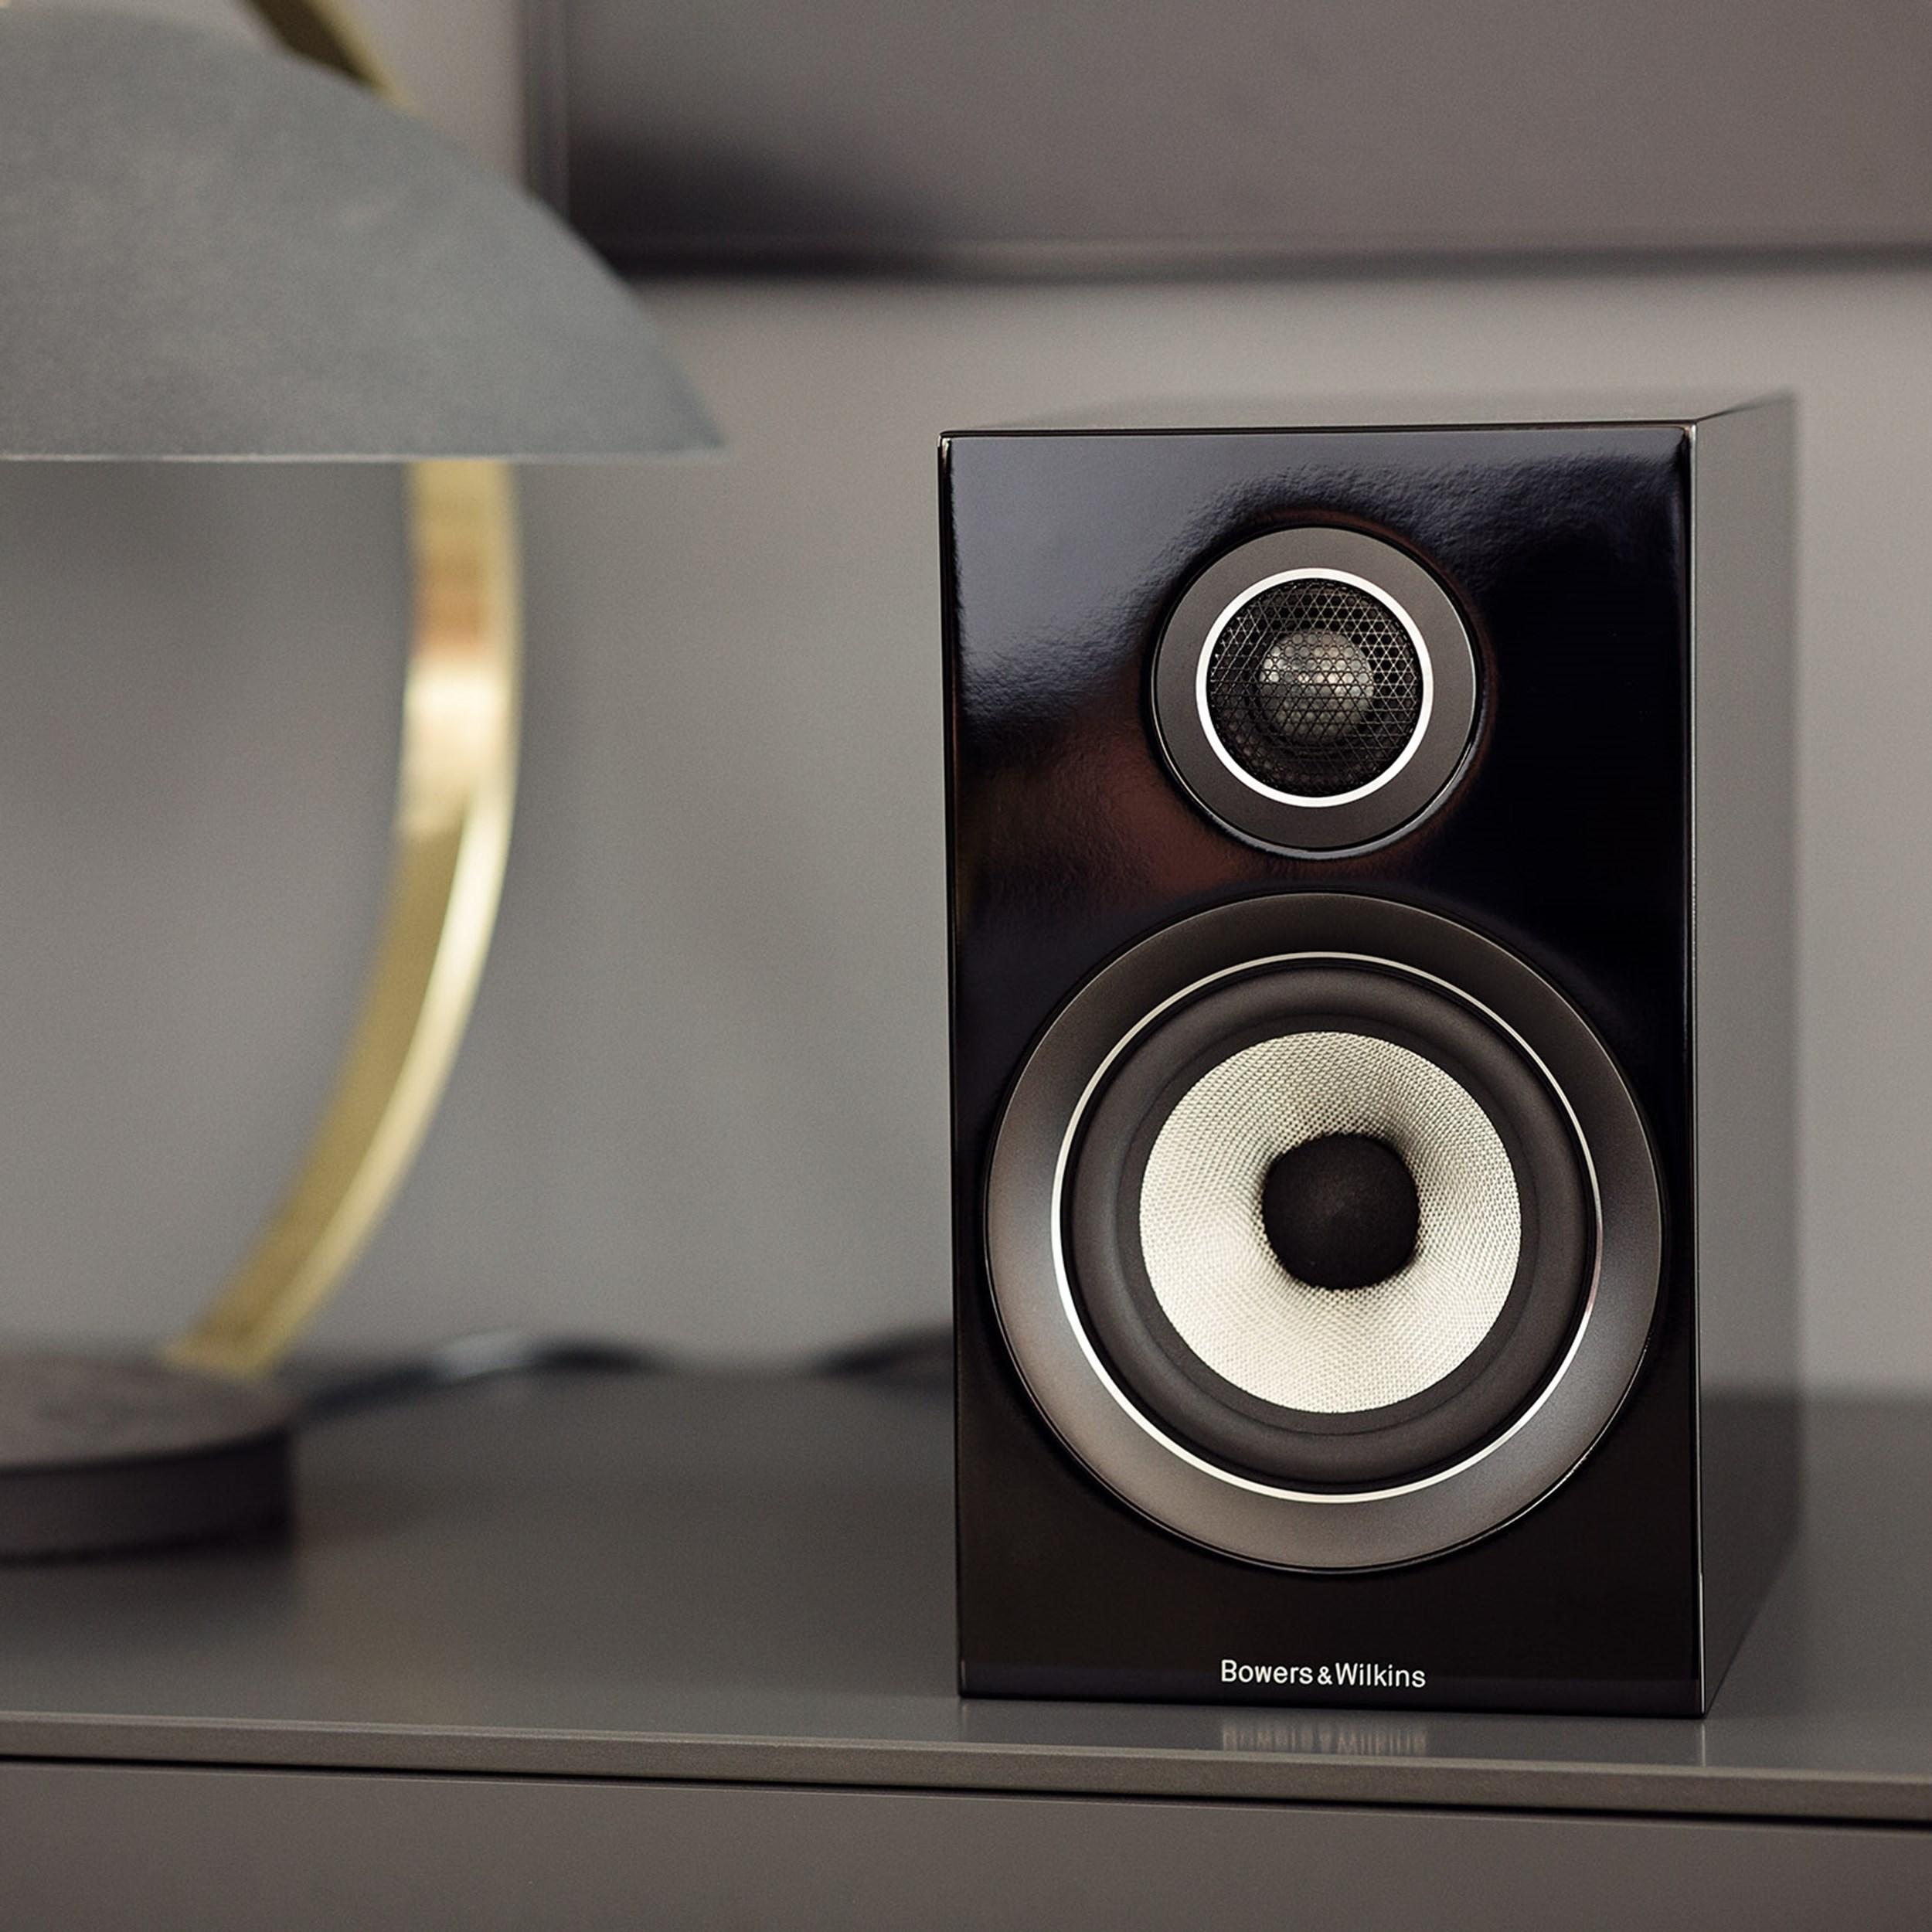 Bowers & Wilkins 707 S2 Kompaktlautsprecher